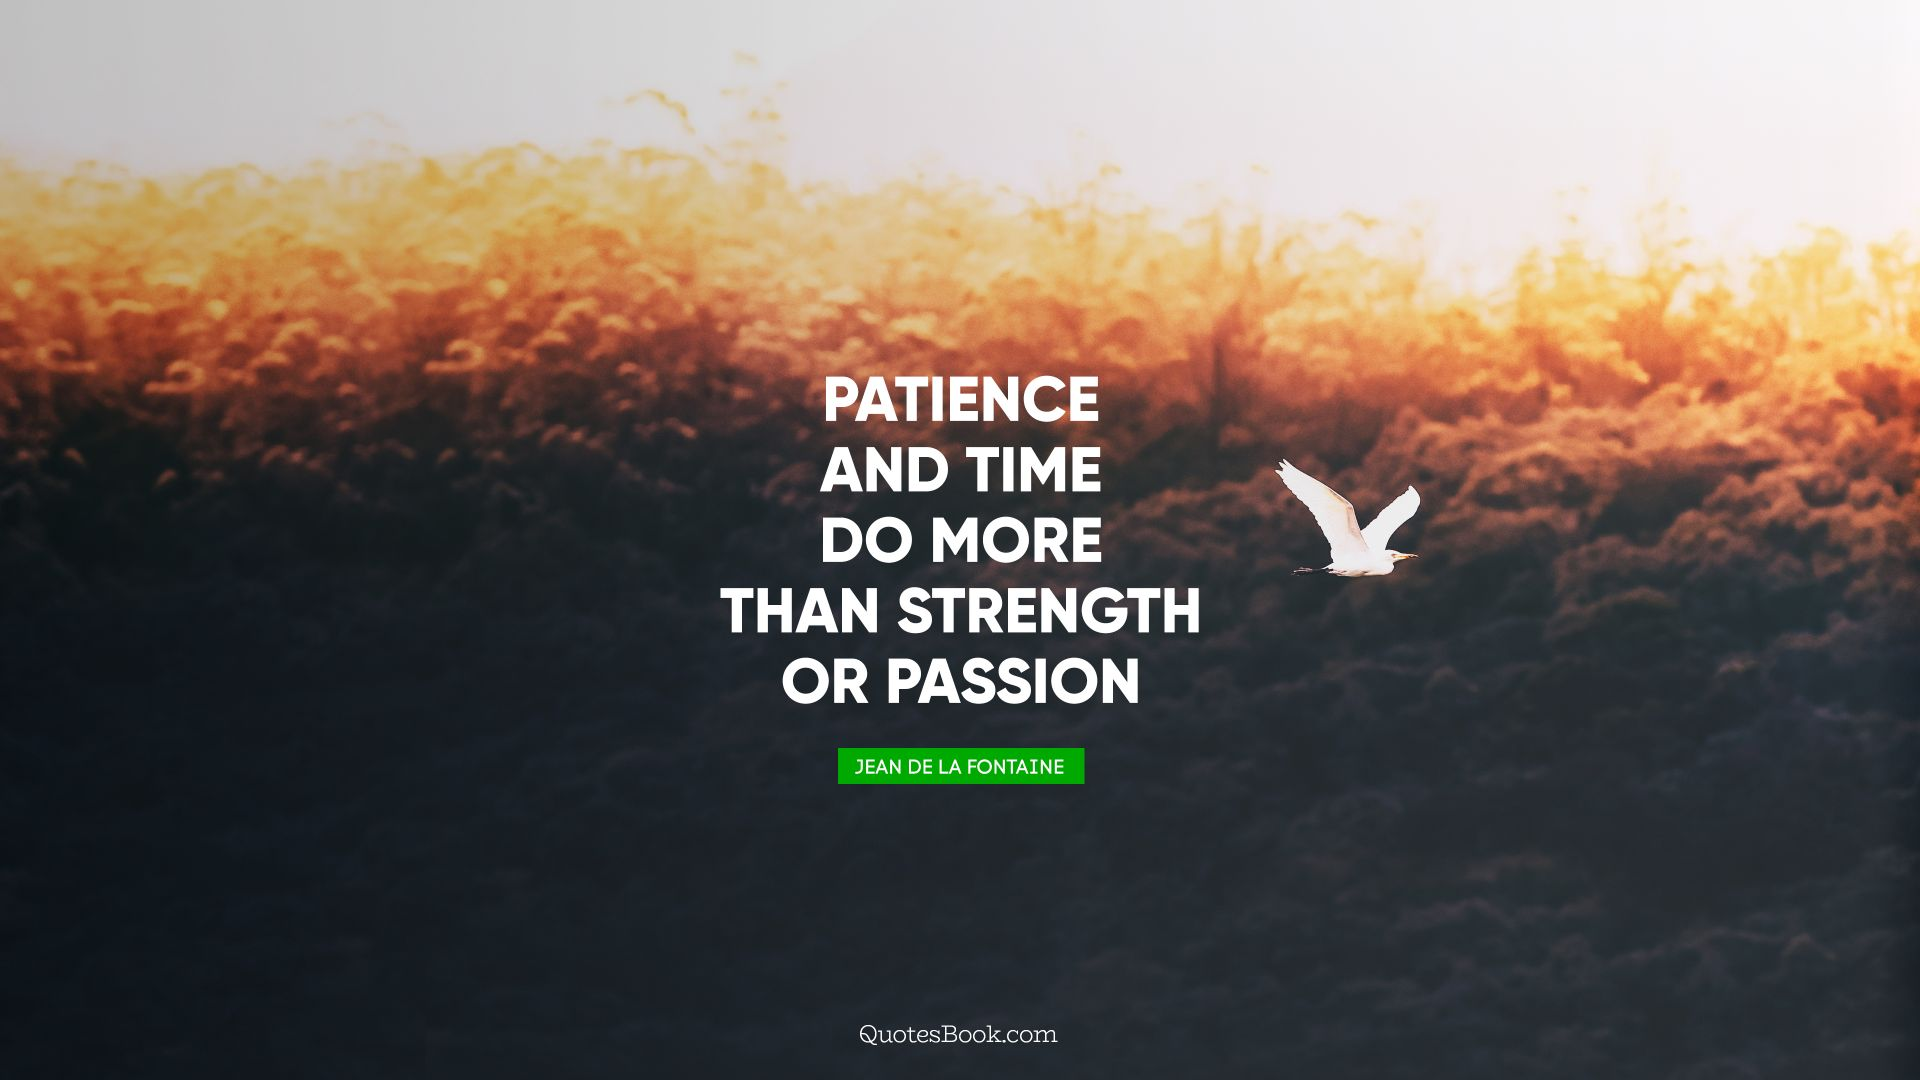 Patience and time do more than strength or passion. - Quote by Jean de La Fontaine